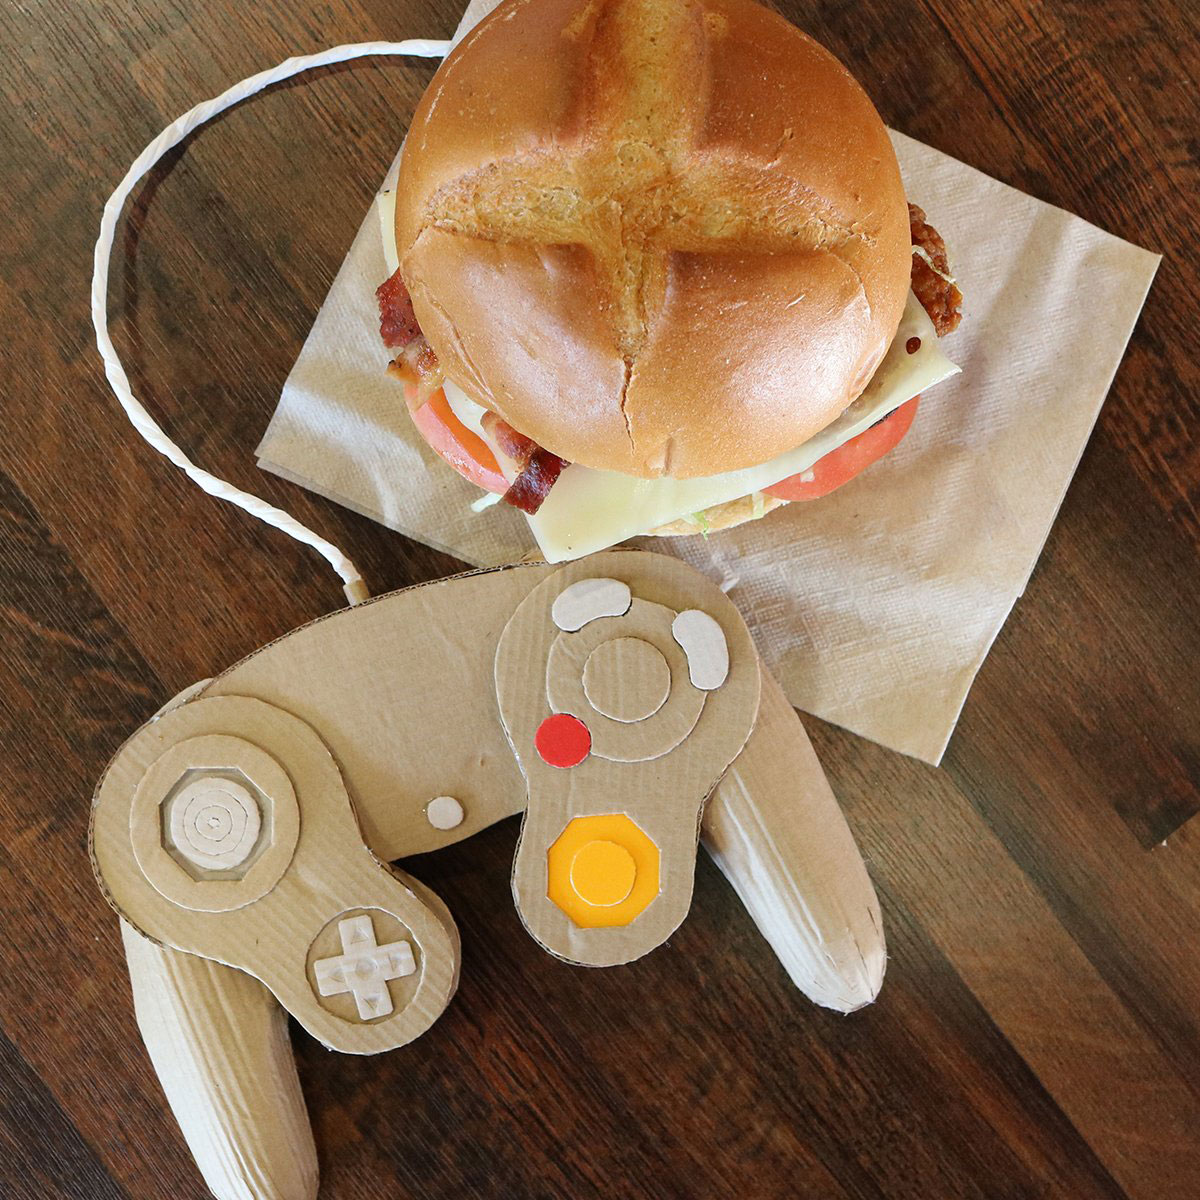 Arby's ad with a Nintendo Gamecube controller